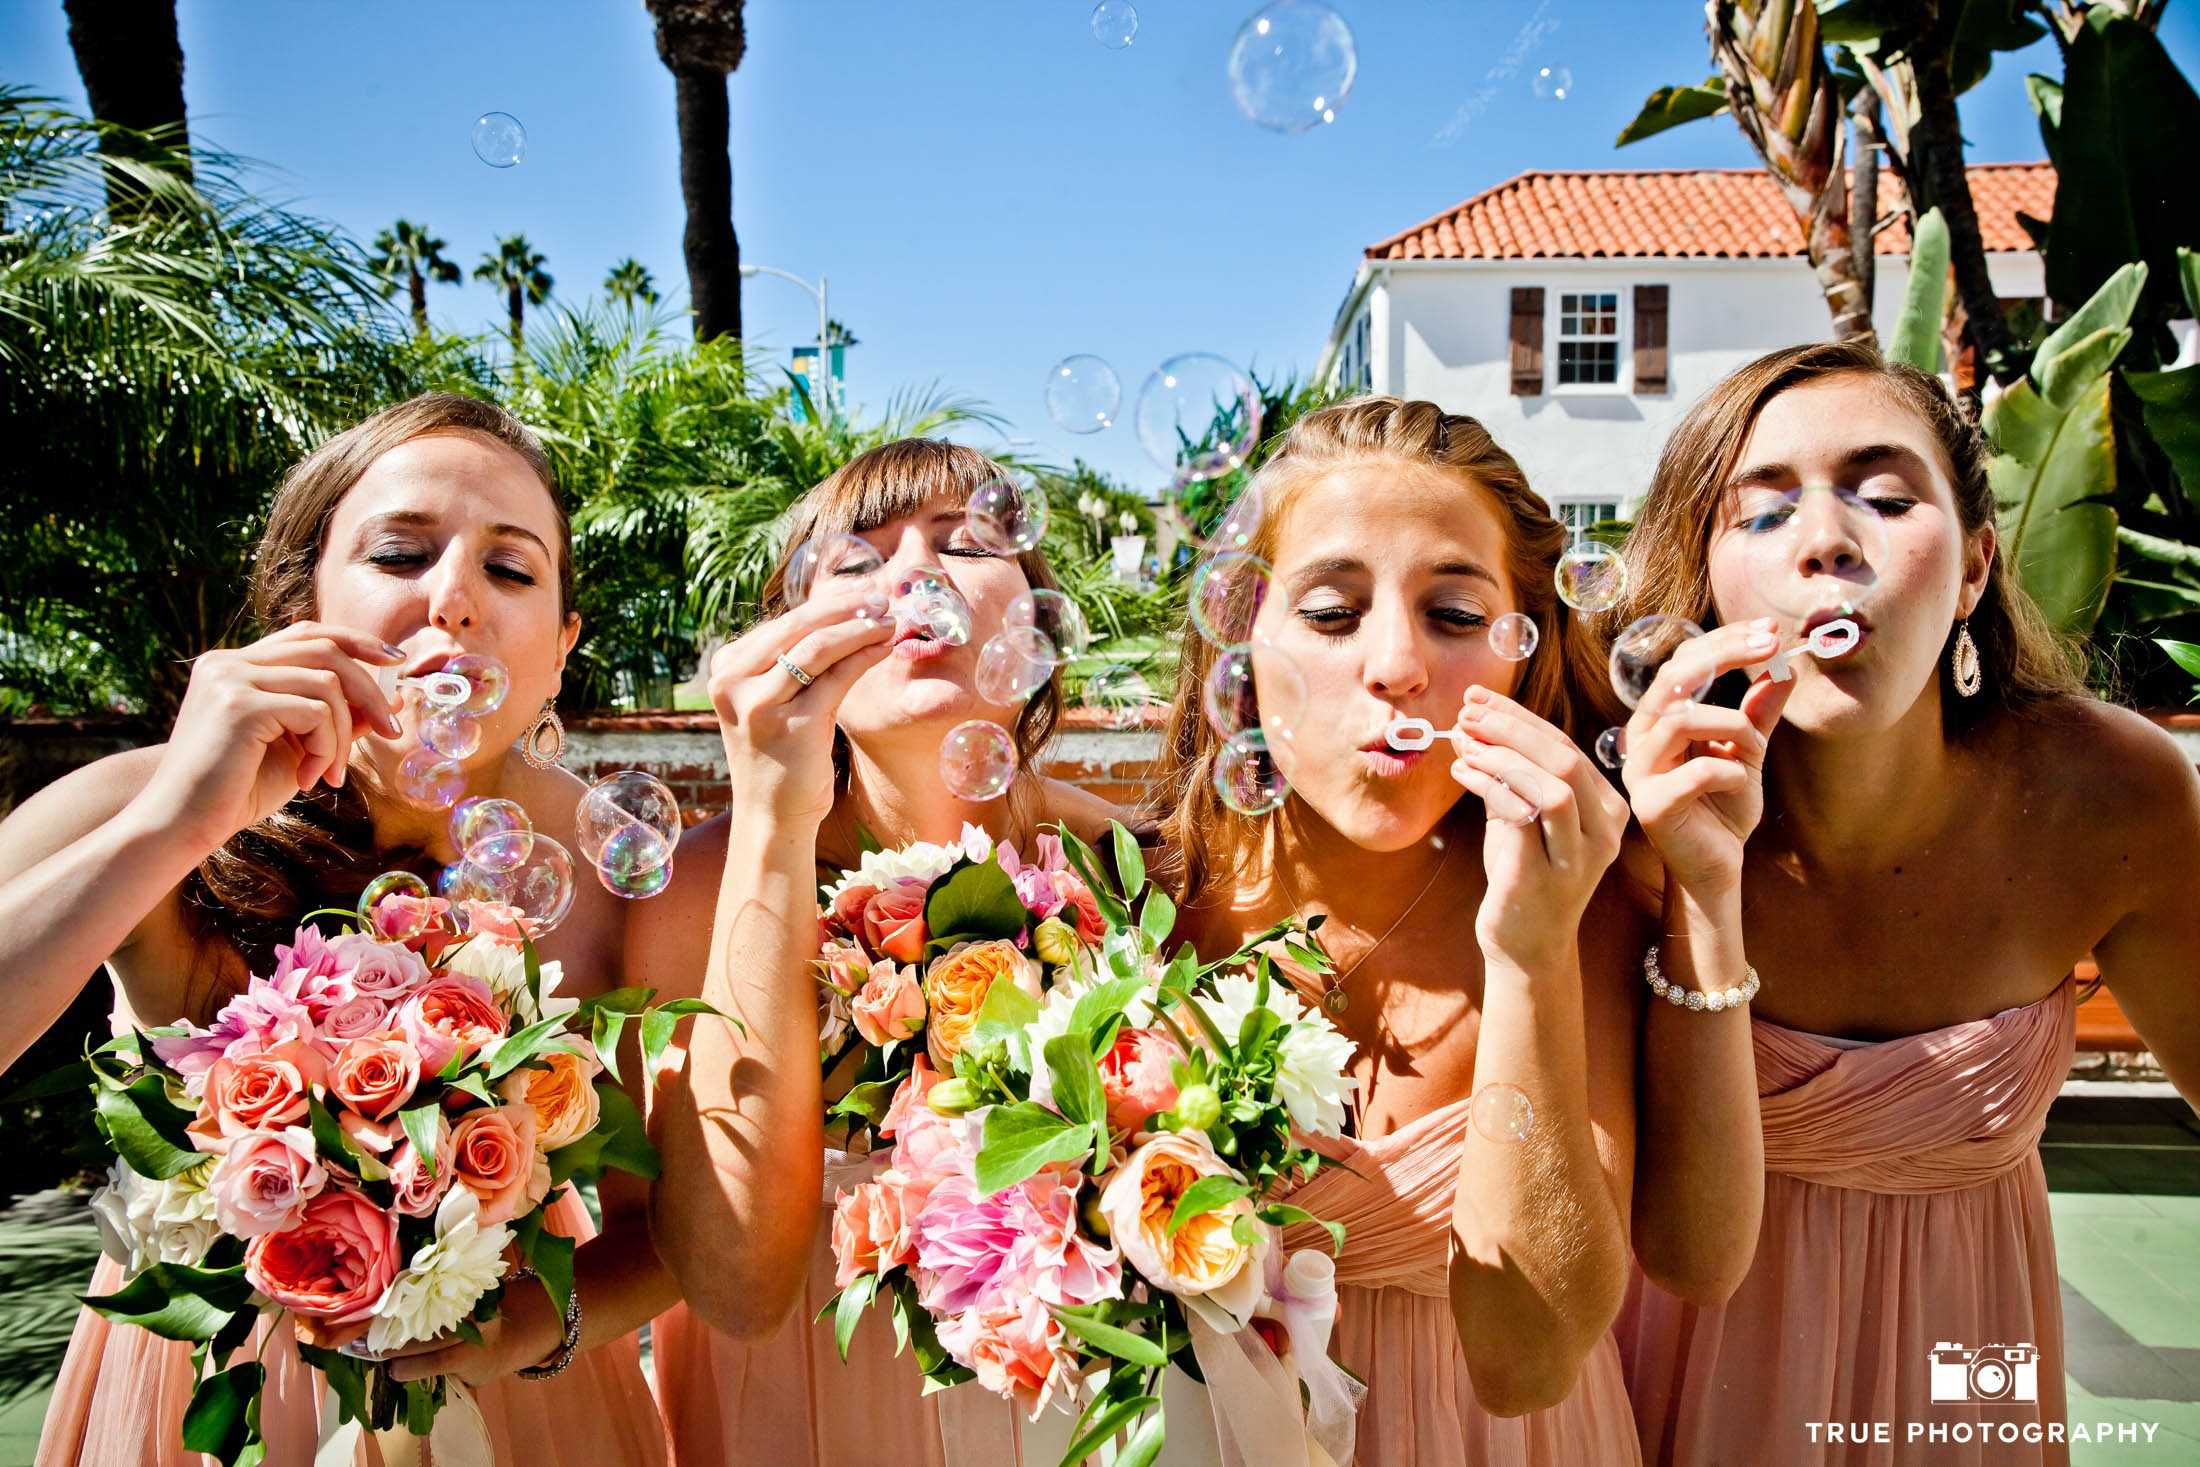 Bridesmaids blow bubbles at camera before wedding ceremony